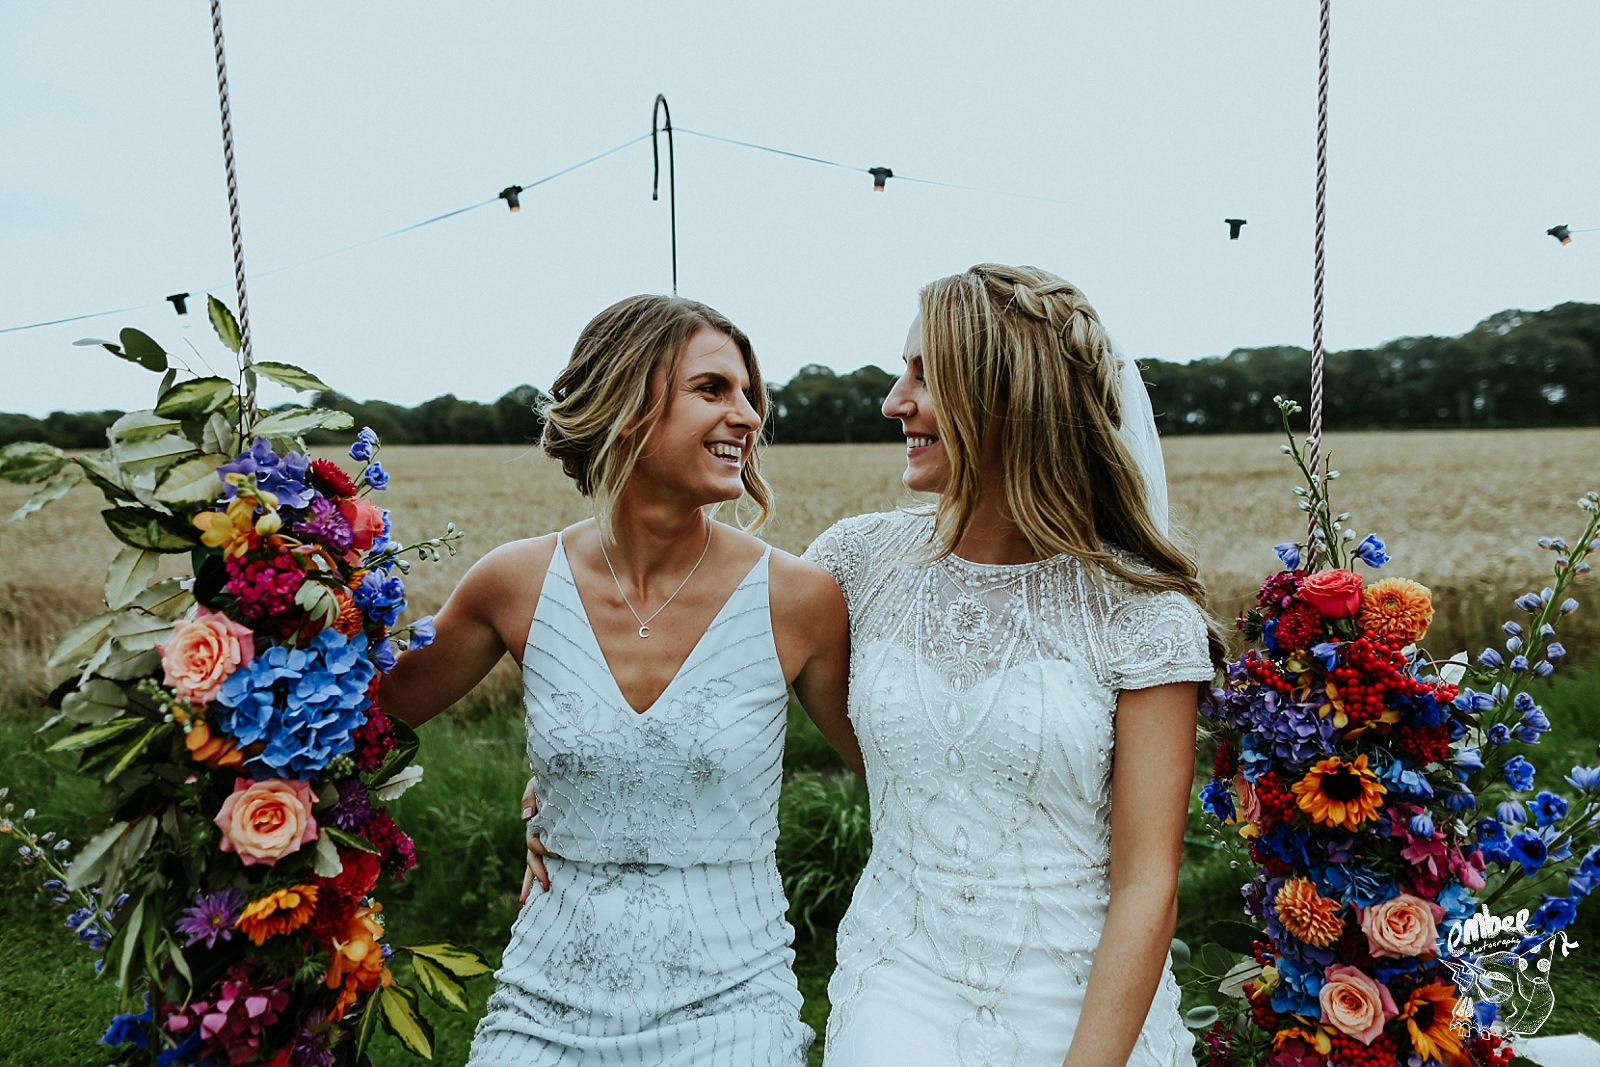 bride and sister on swing with flowers